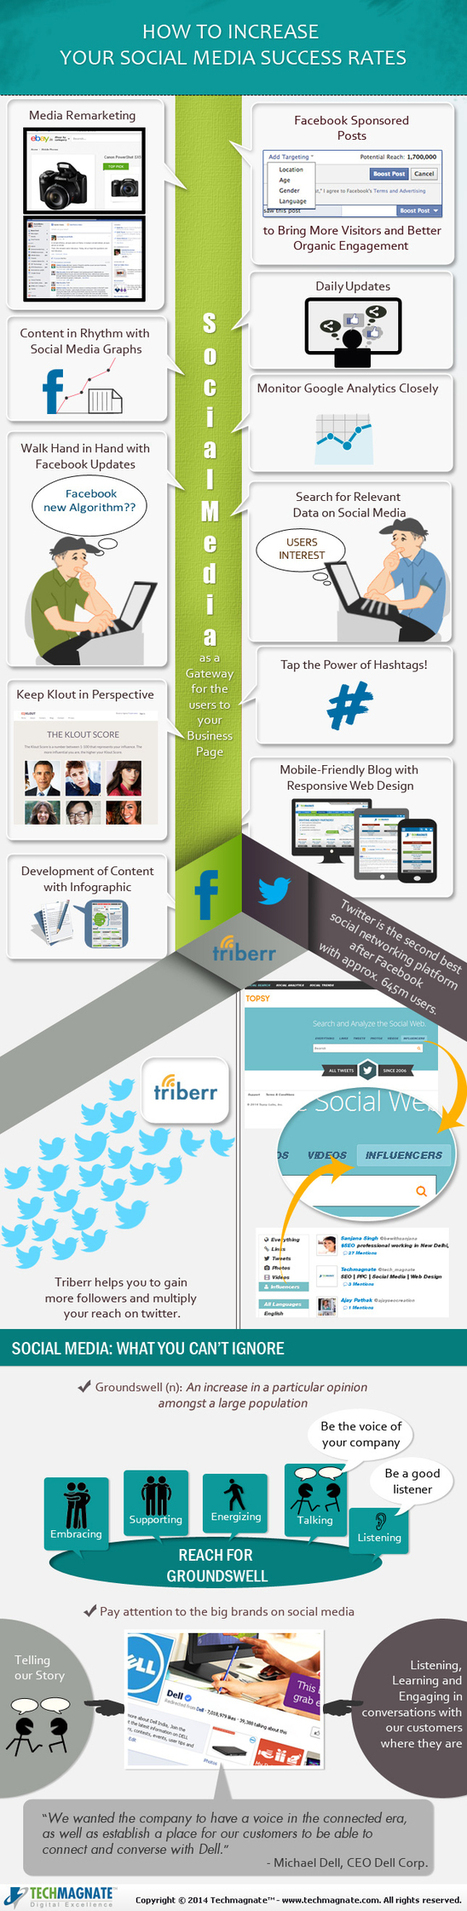 Social Media Infographic: How To Increase Your Success Rates? | Social Media (network, technology, blog, community, virtual reality, etc...) | Scoop.it